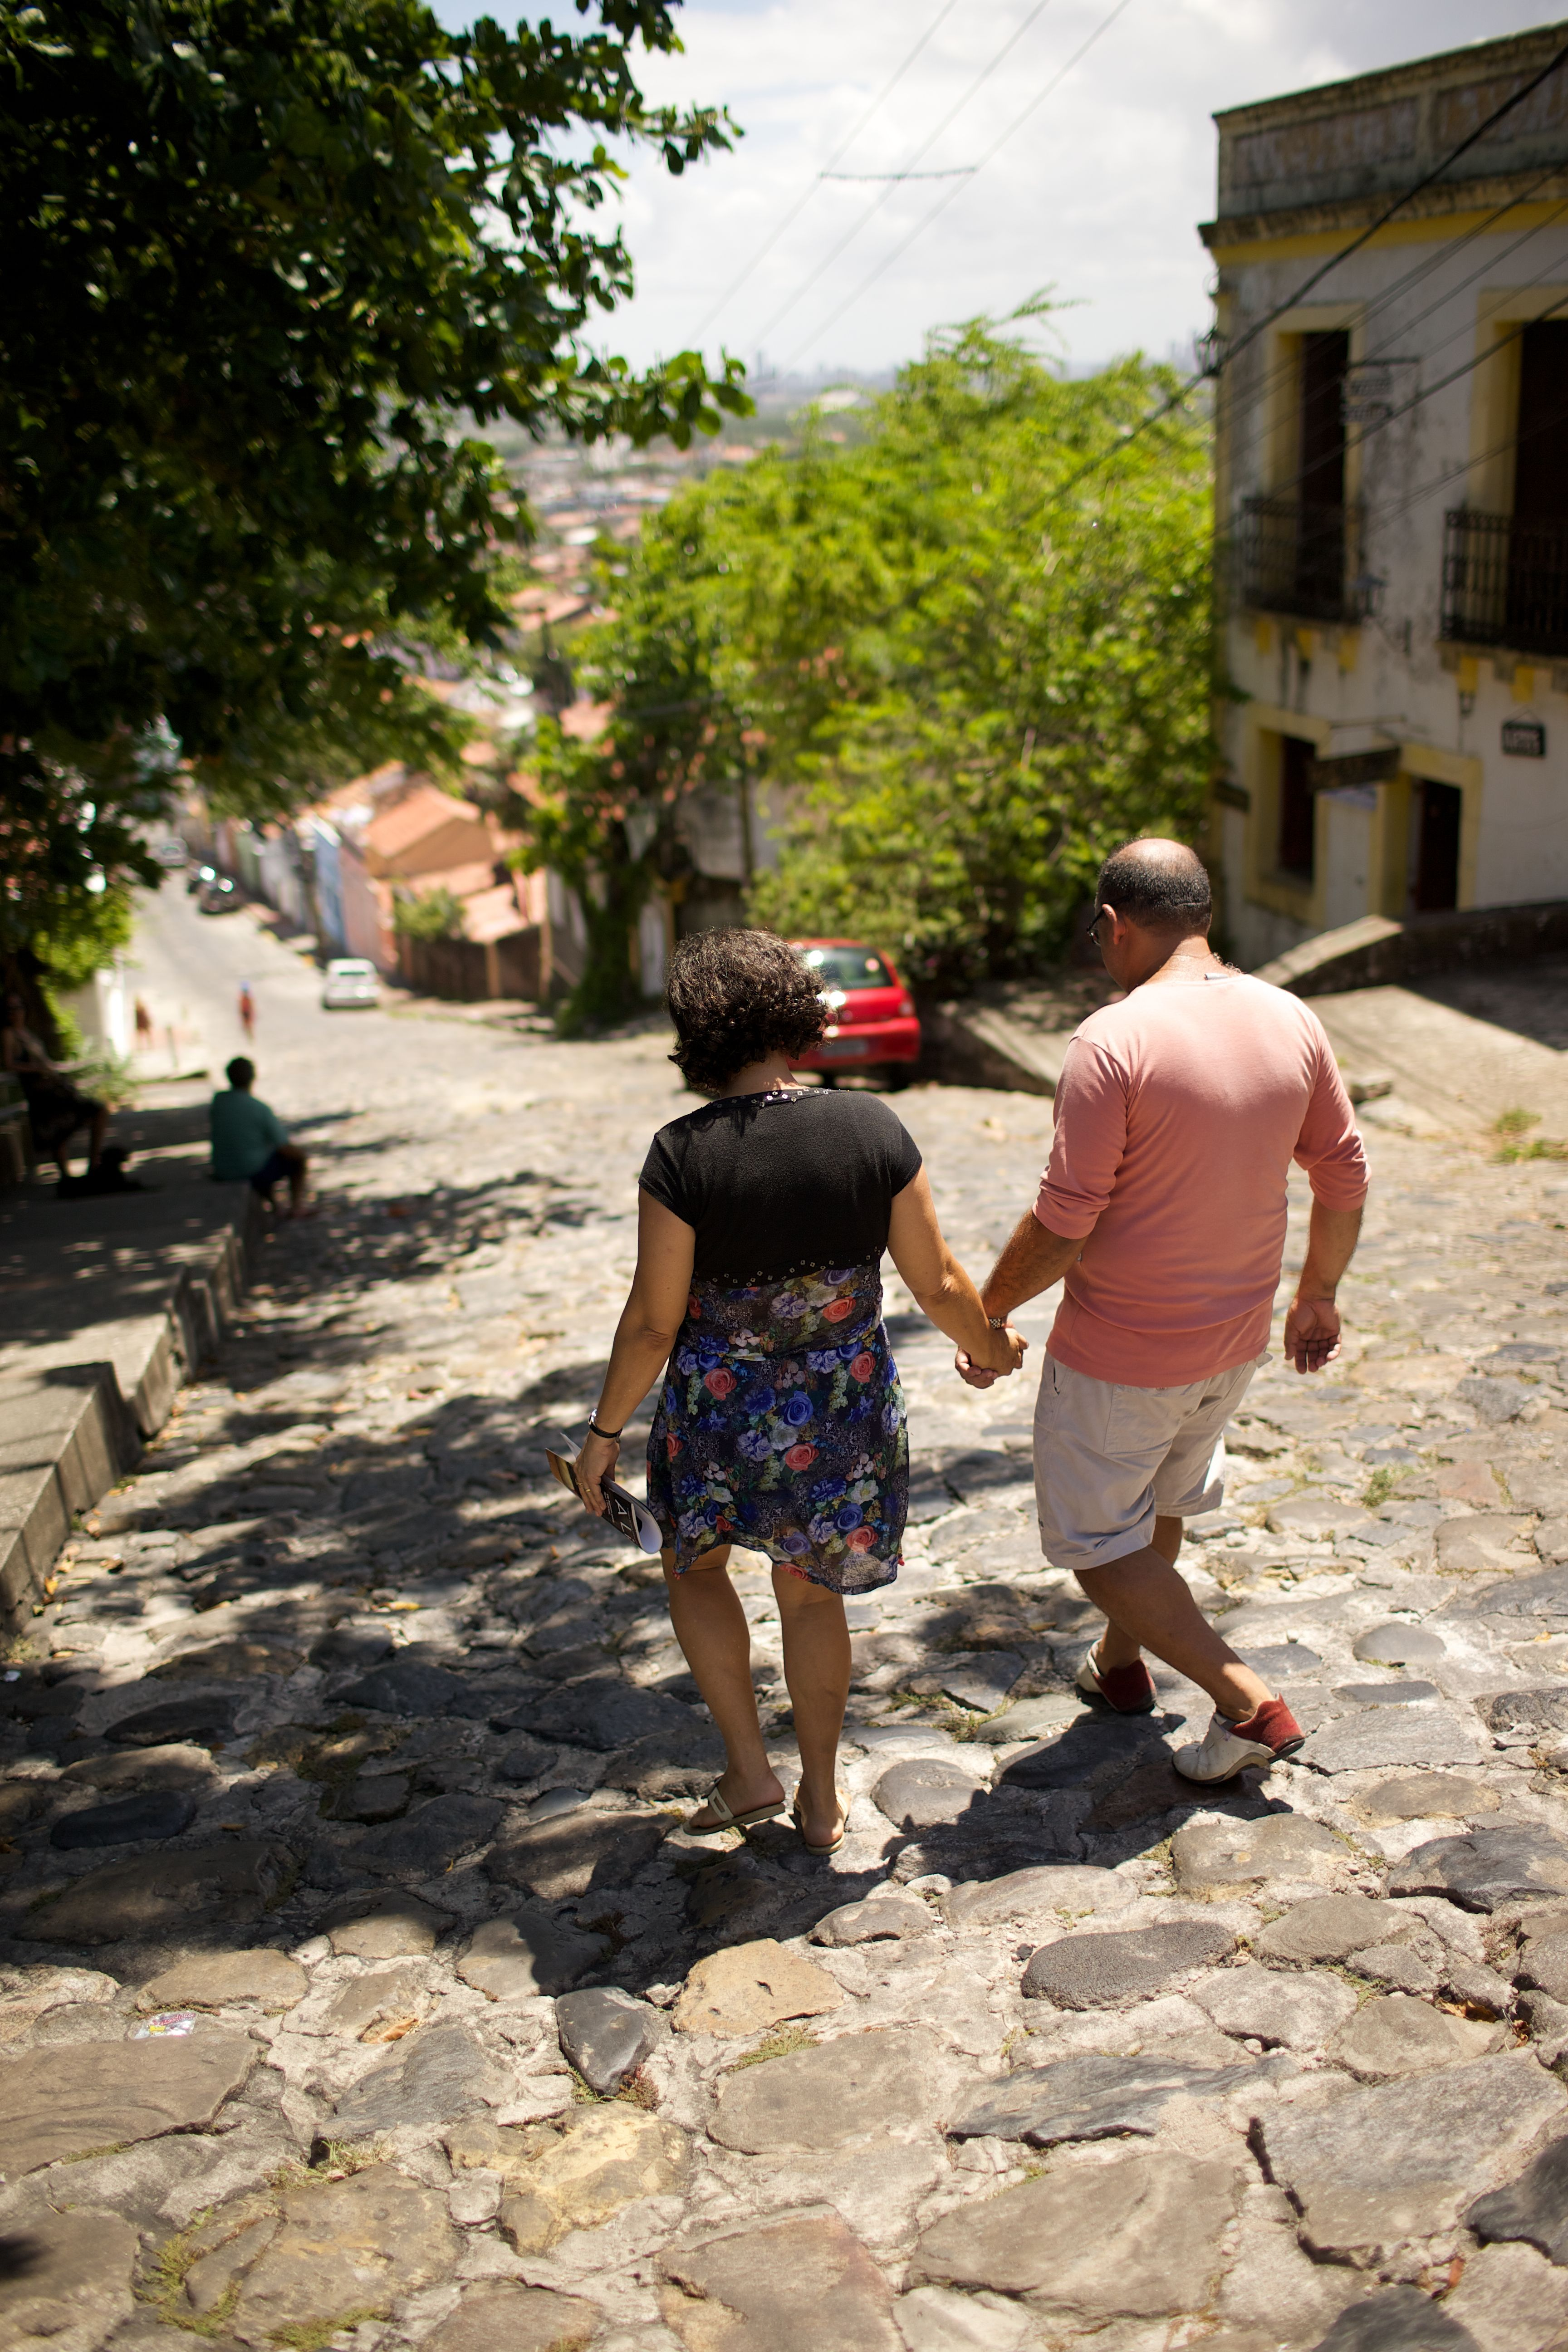 A couple holding hands and walking down a stone street in Brazil.